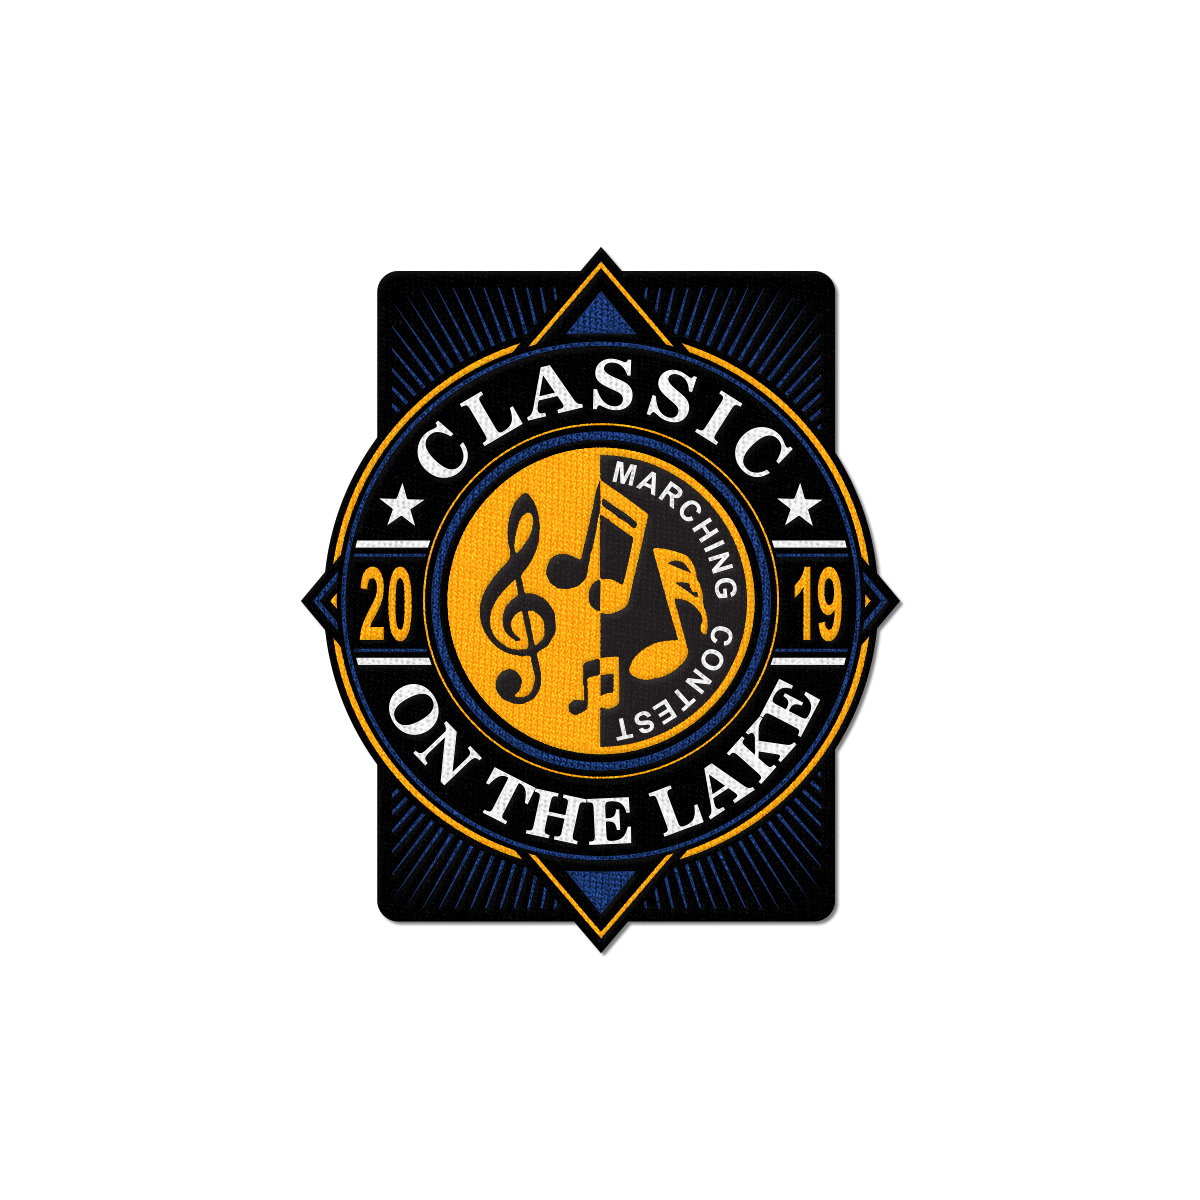 2019 Classic On The Lake Patch